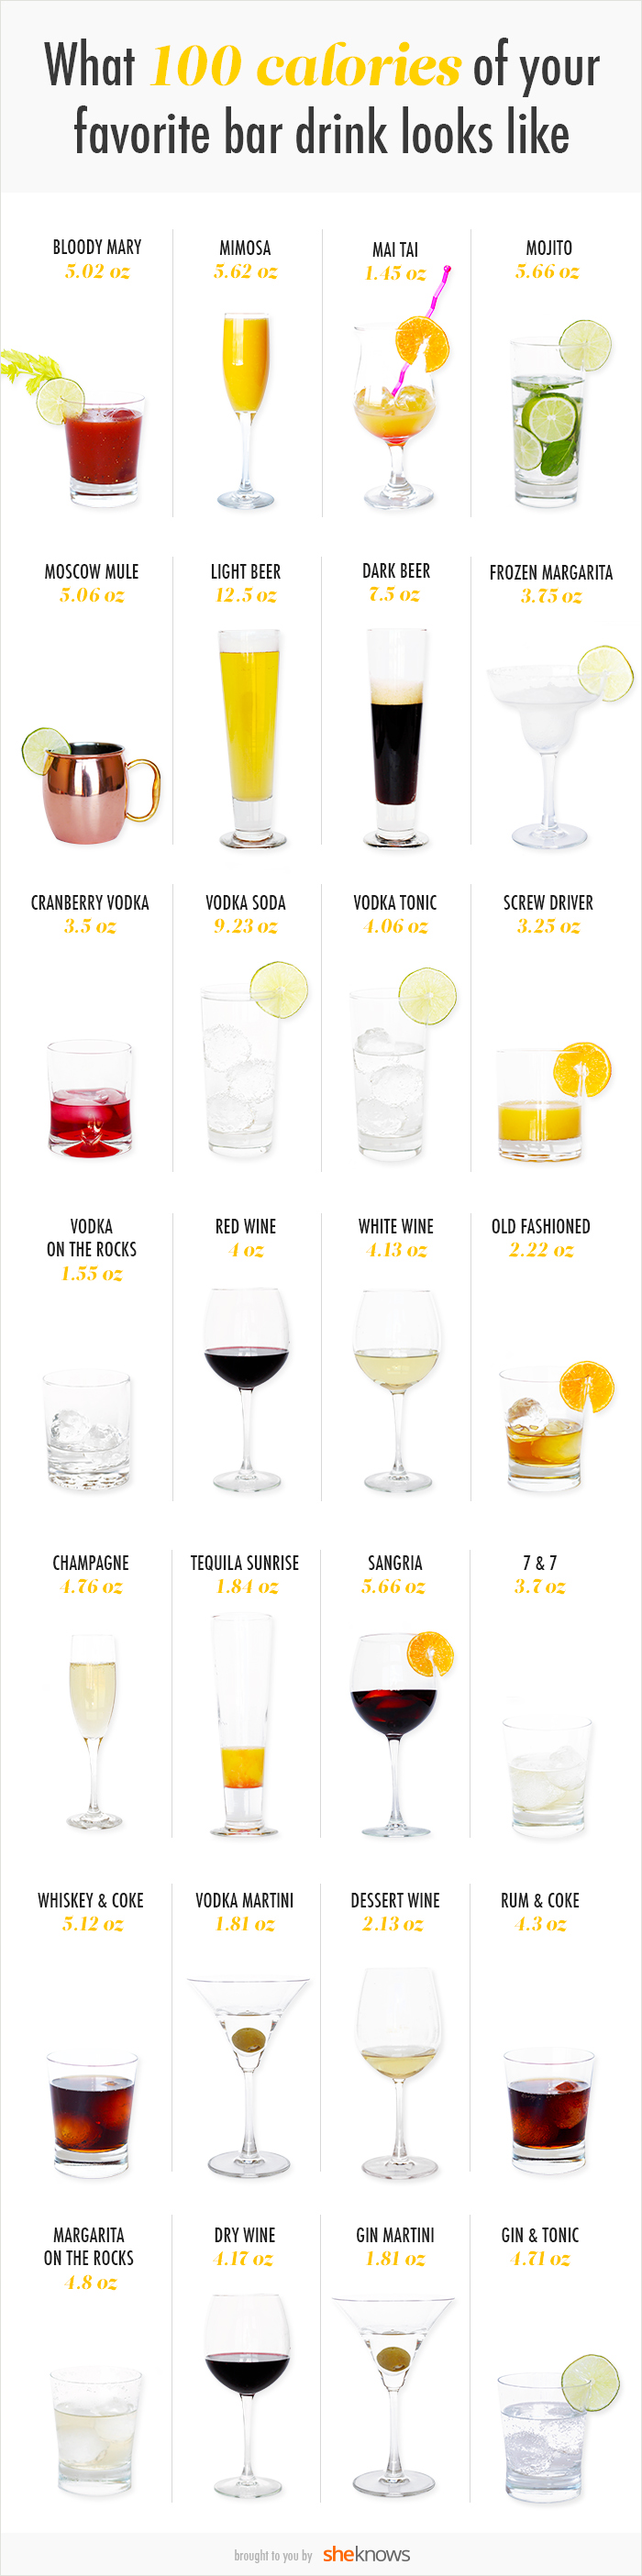 What 100 calories of your favorite alcoholic drinks looks like